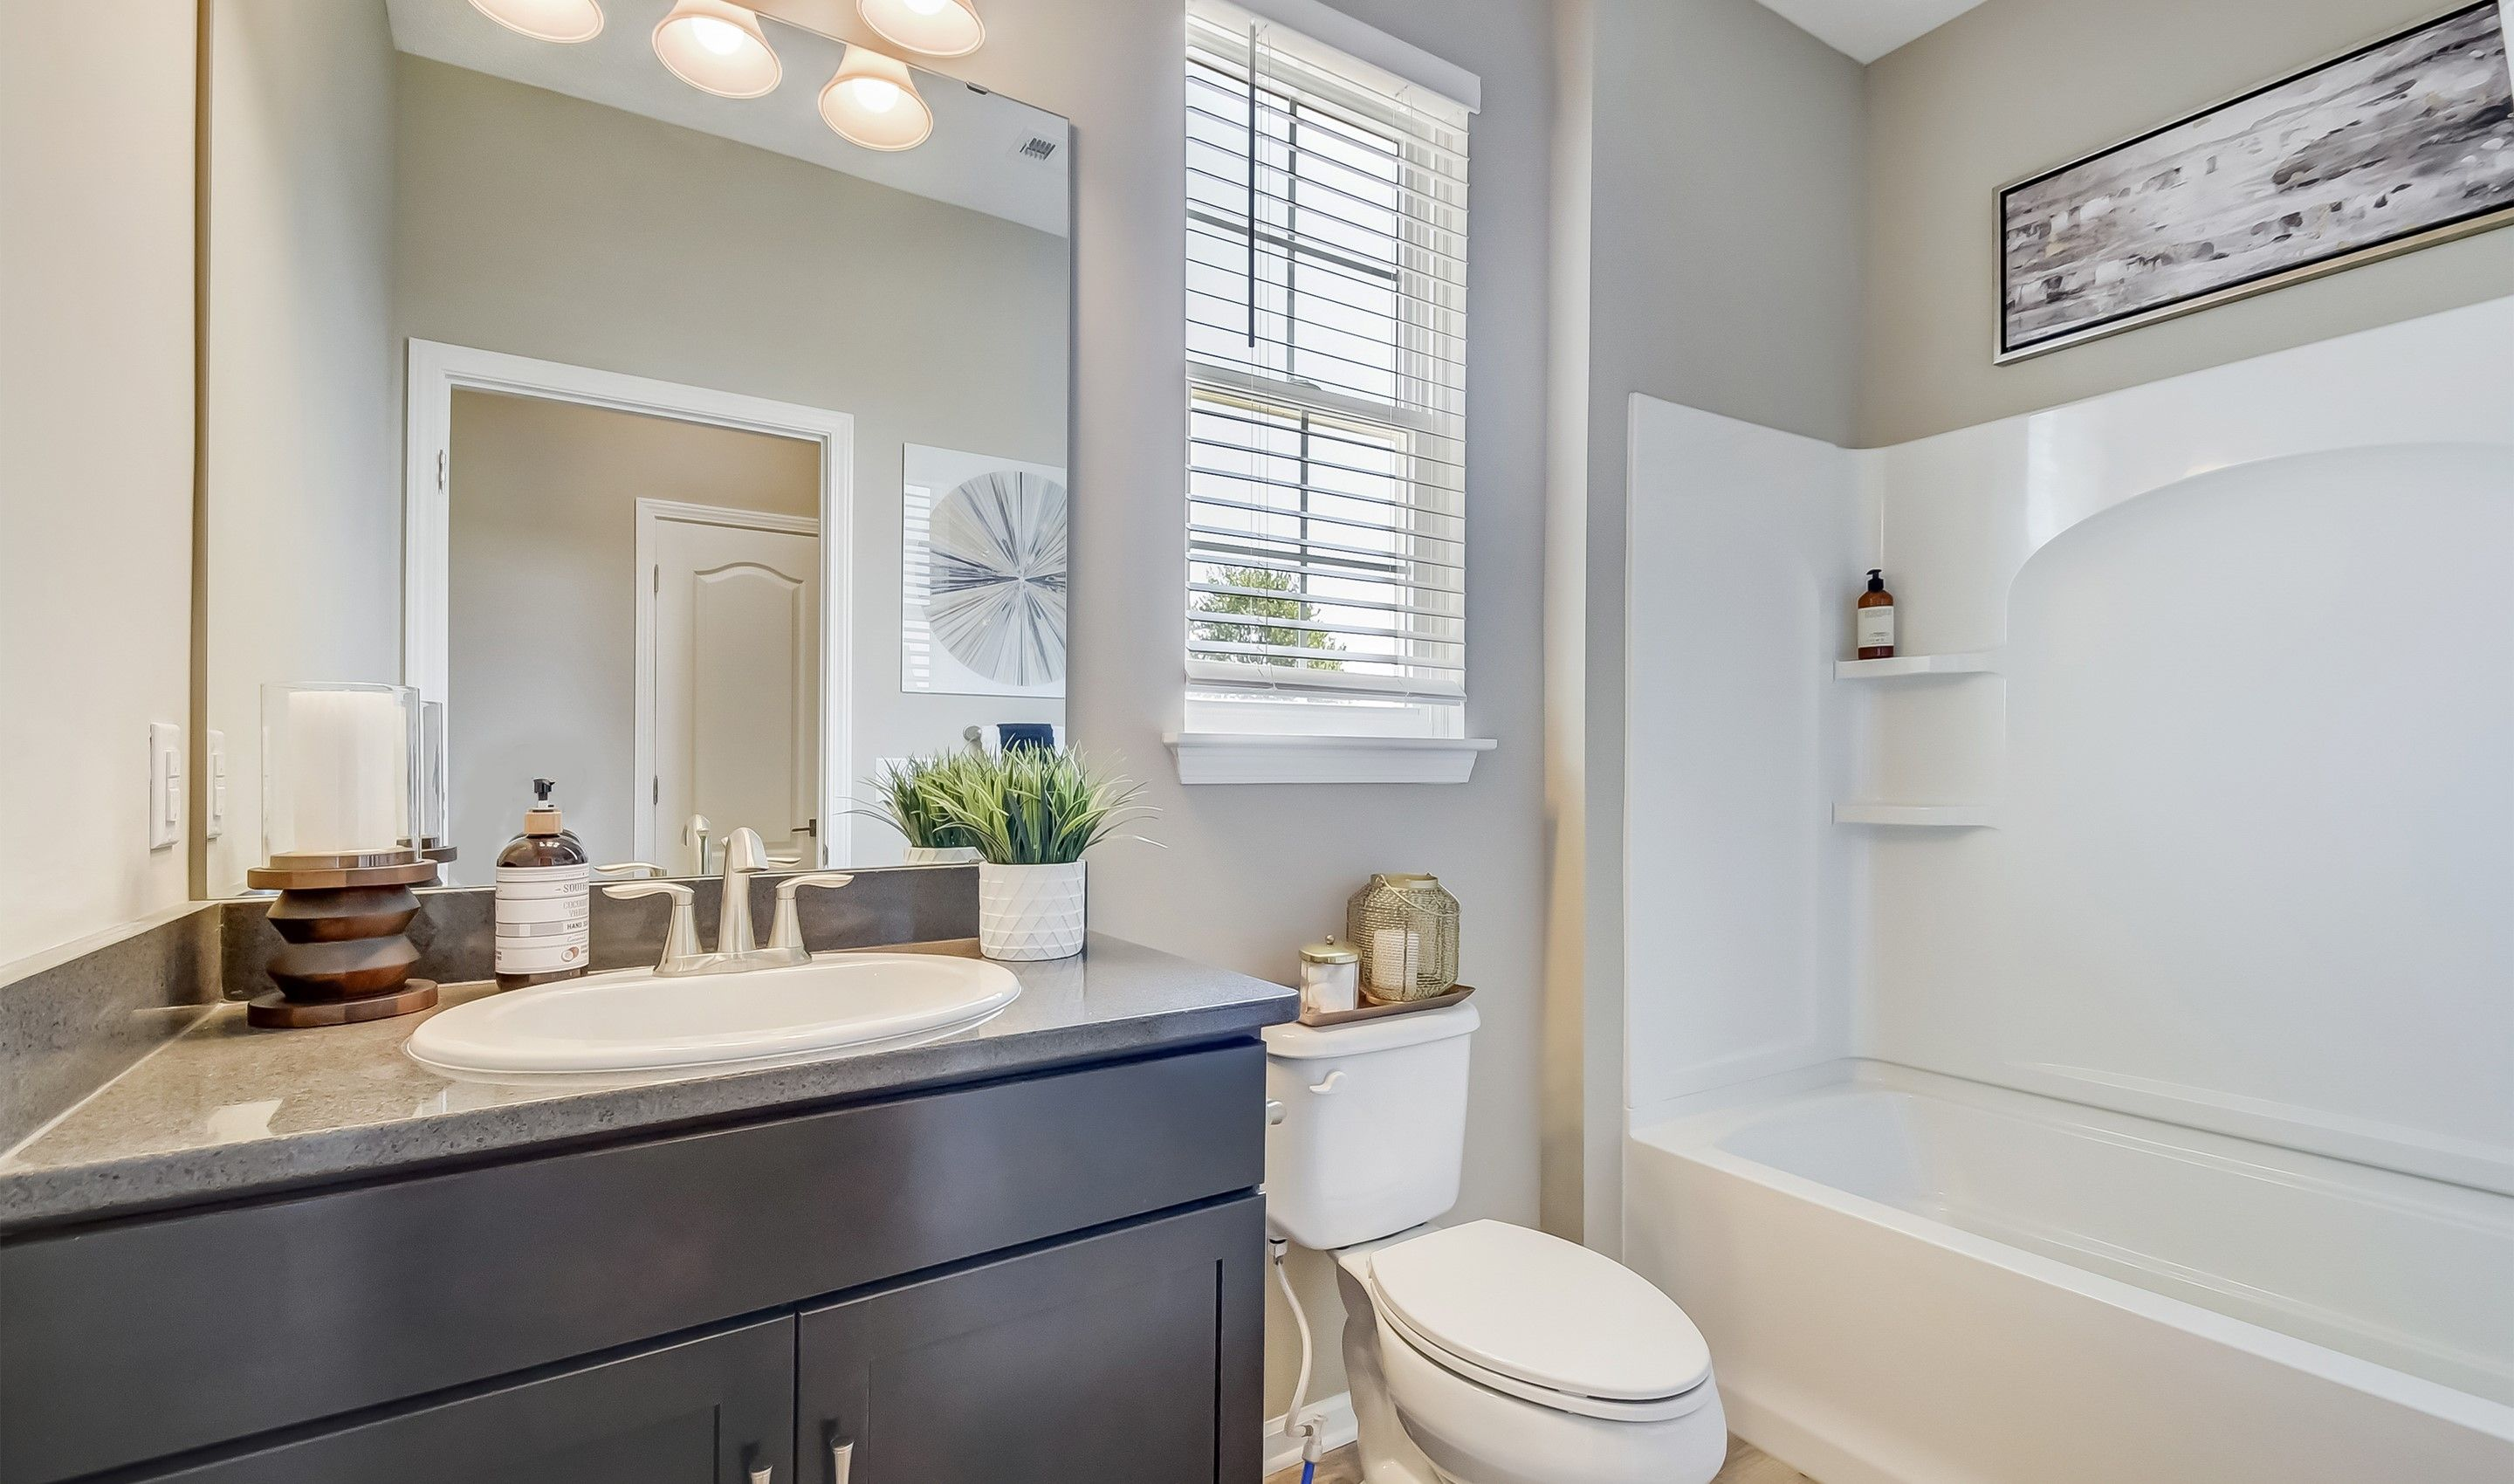 Bathroom featured in the Barclay By K. Hovnanian's® Four Seasons in Cleveland, OH